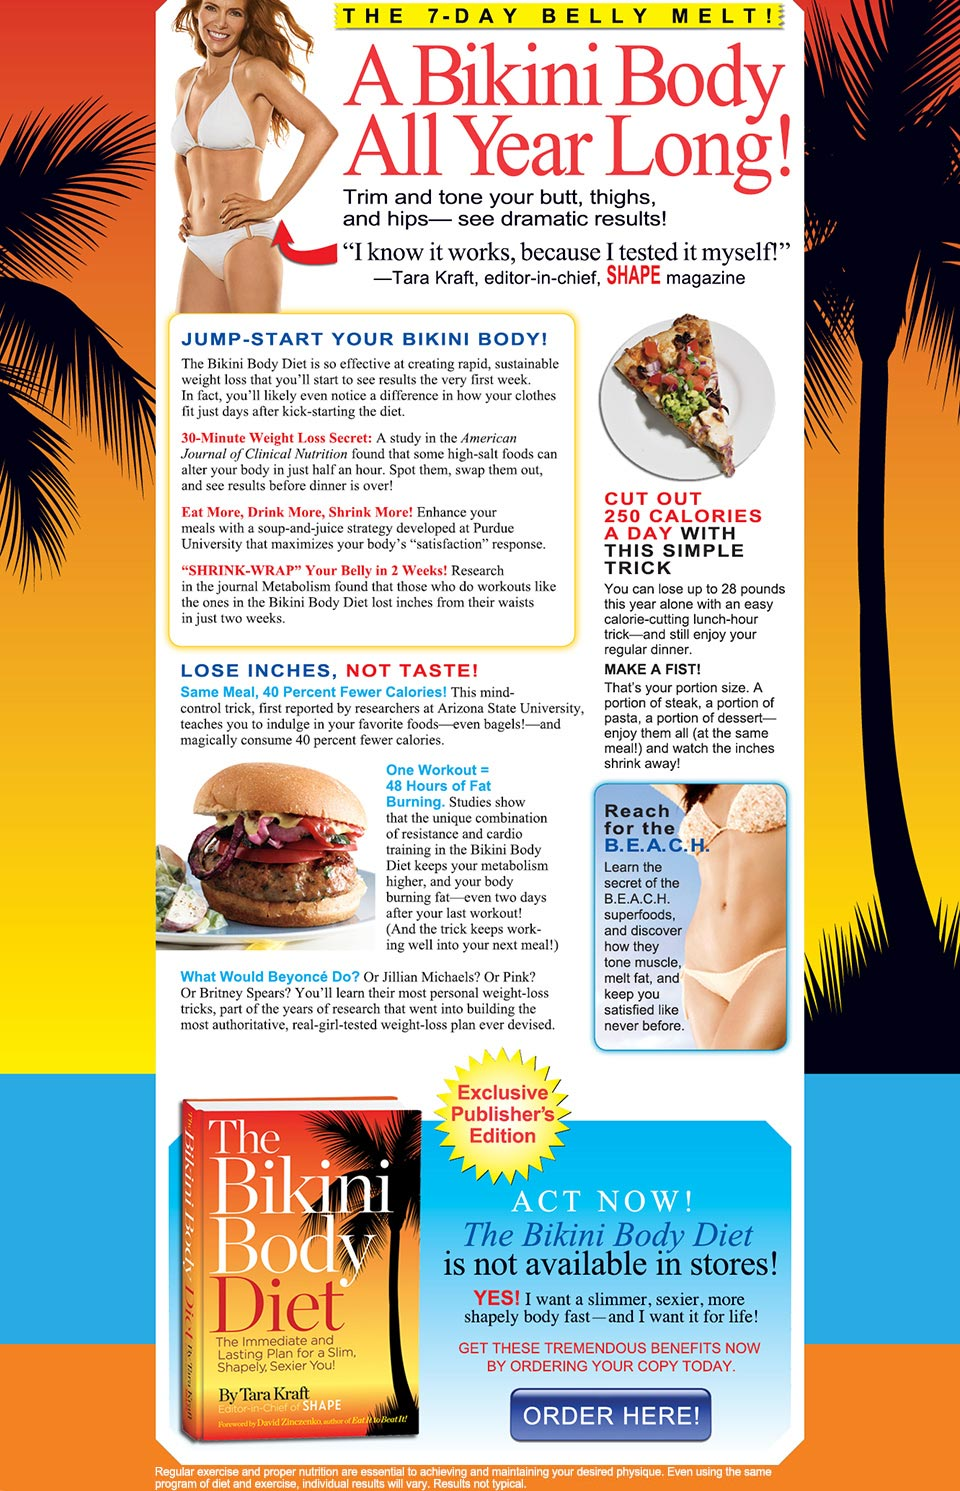 The Bikini Body Diet by Tara Kraft - Order Now!